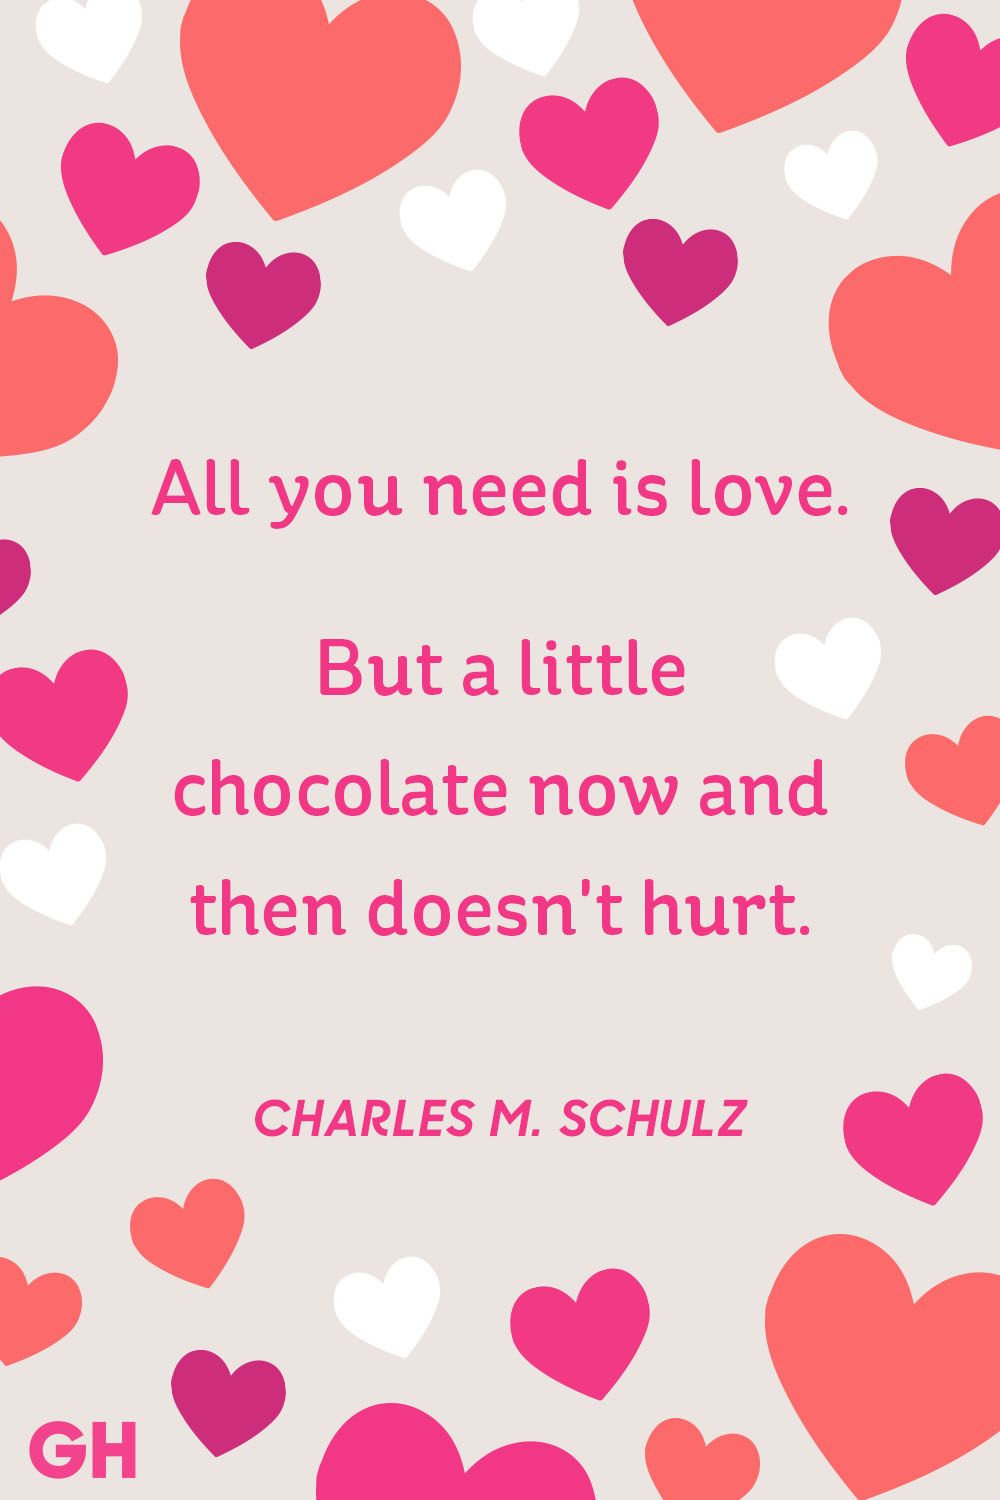 Sunshiny Day Quotes Romantic Quotes About Relationships Day Quotes Romantic Quotes About Valentines Day Photos Download Valentines Day Photos Hot photos Valentines Day Photos